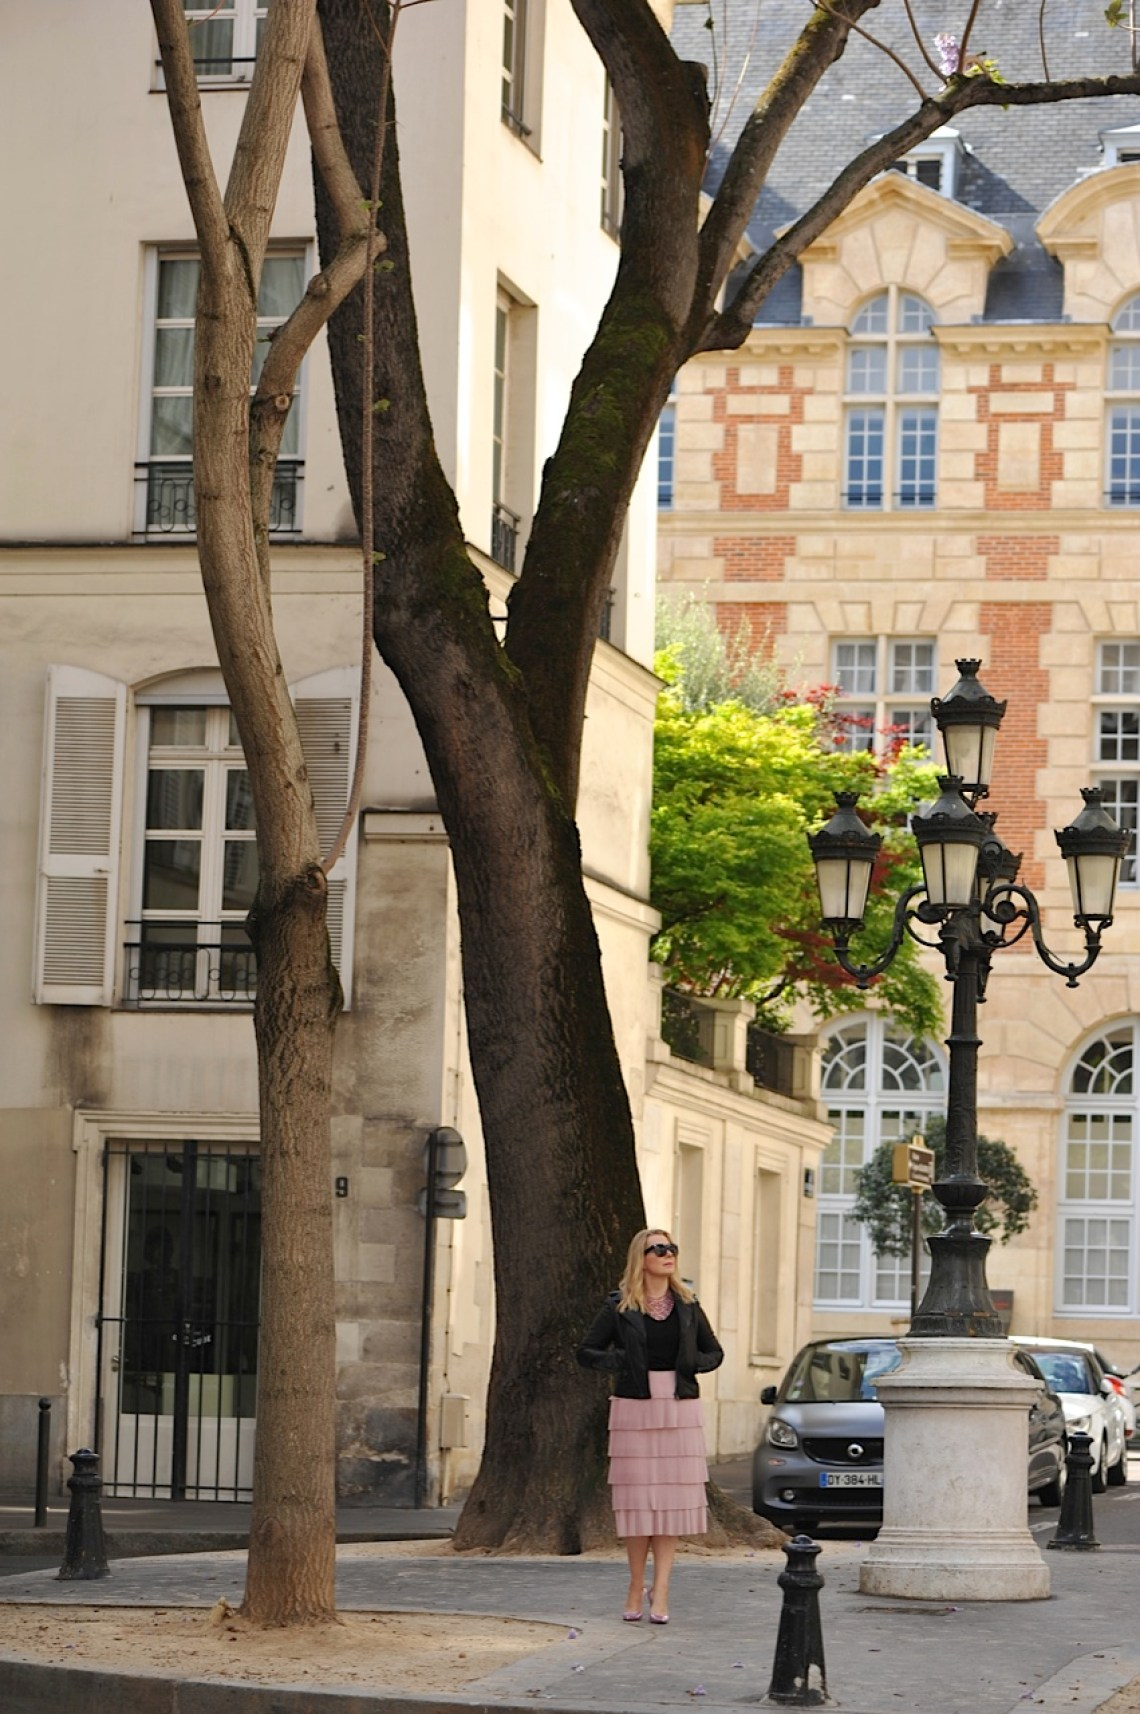 Place de Furstenberg, Paris